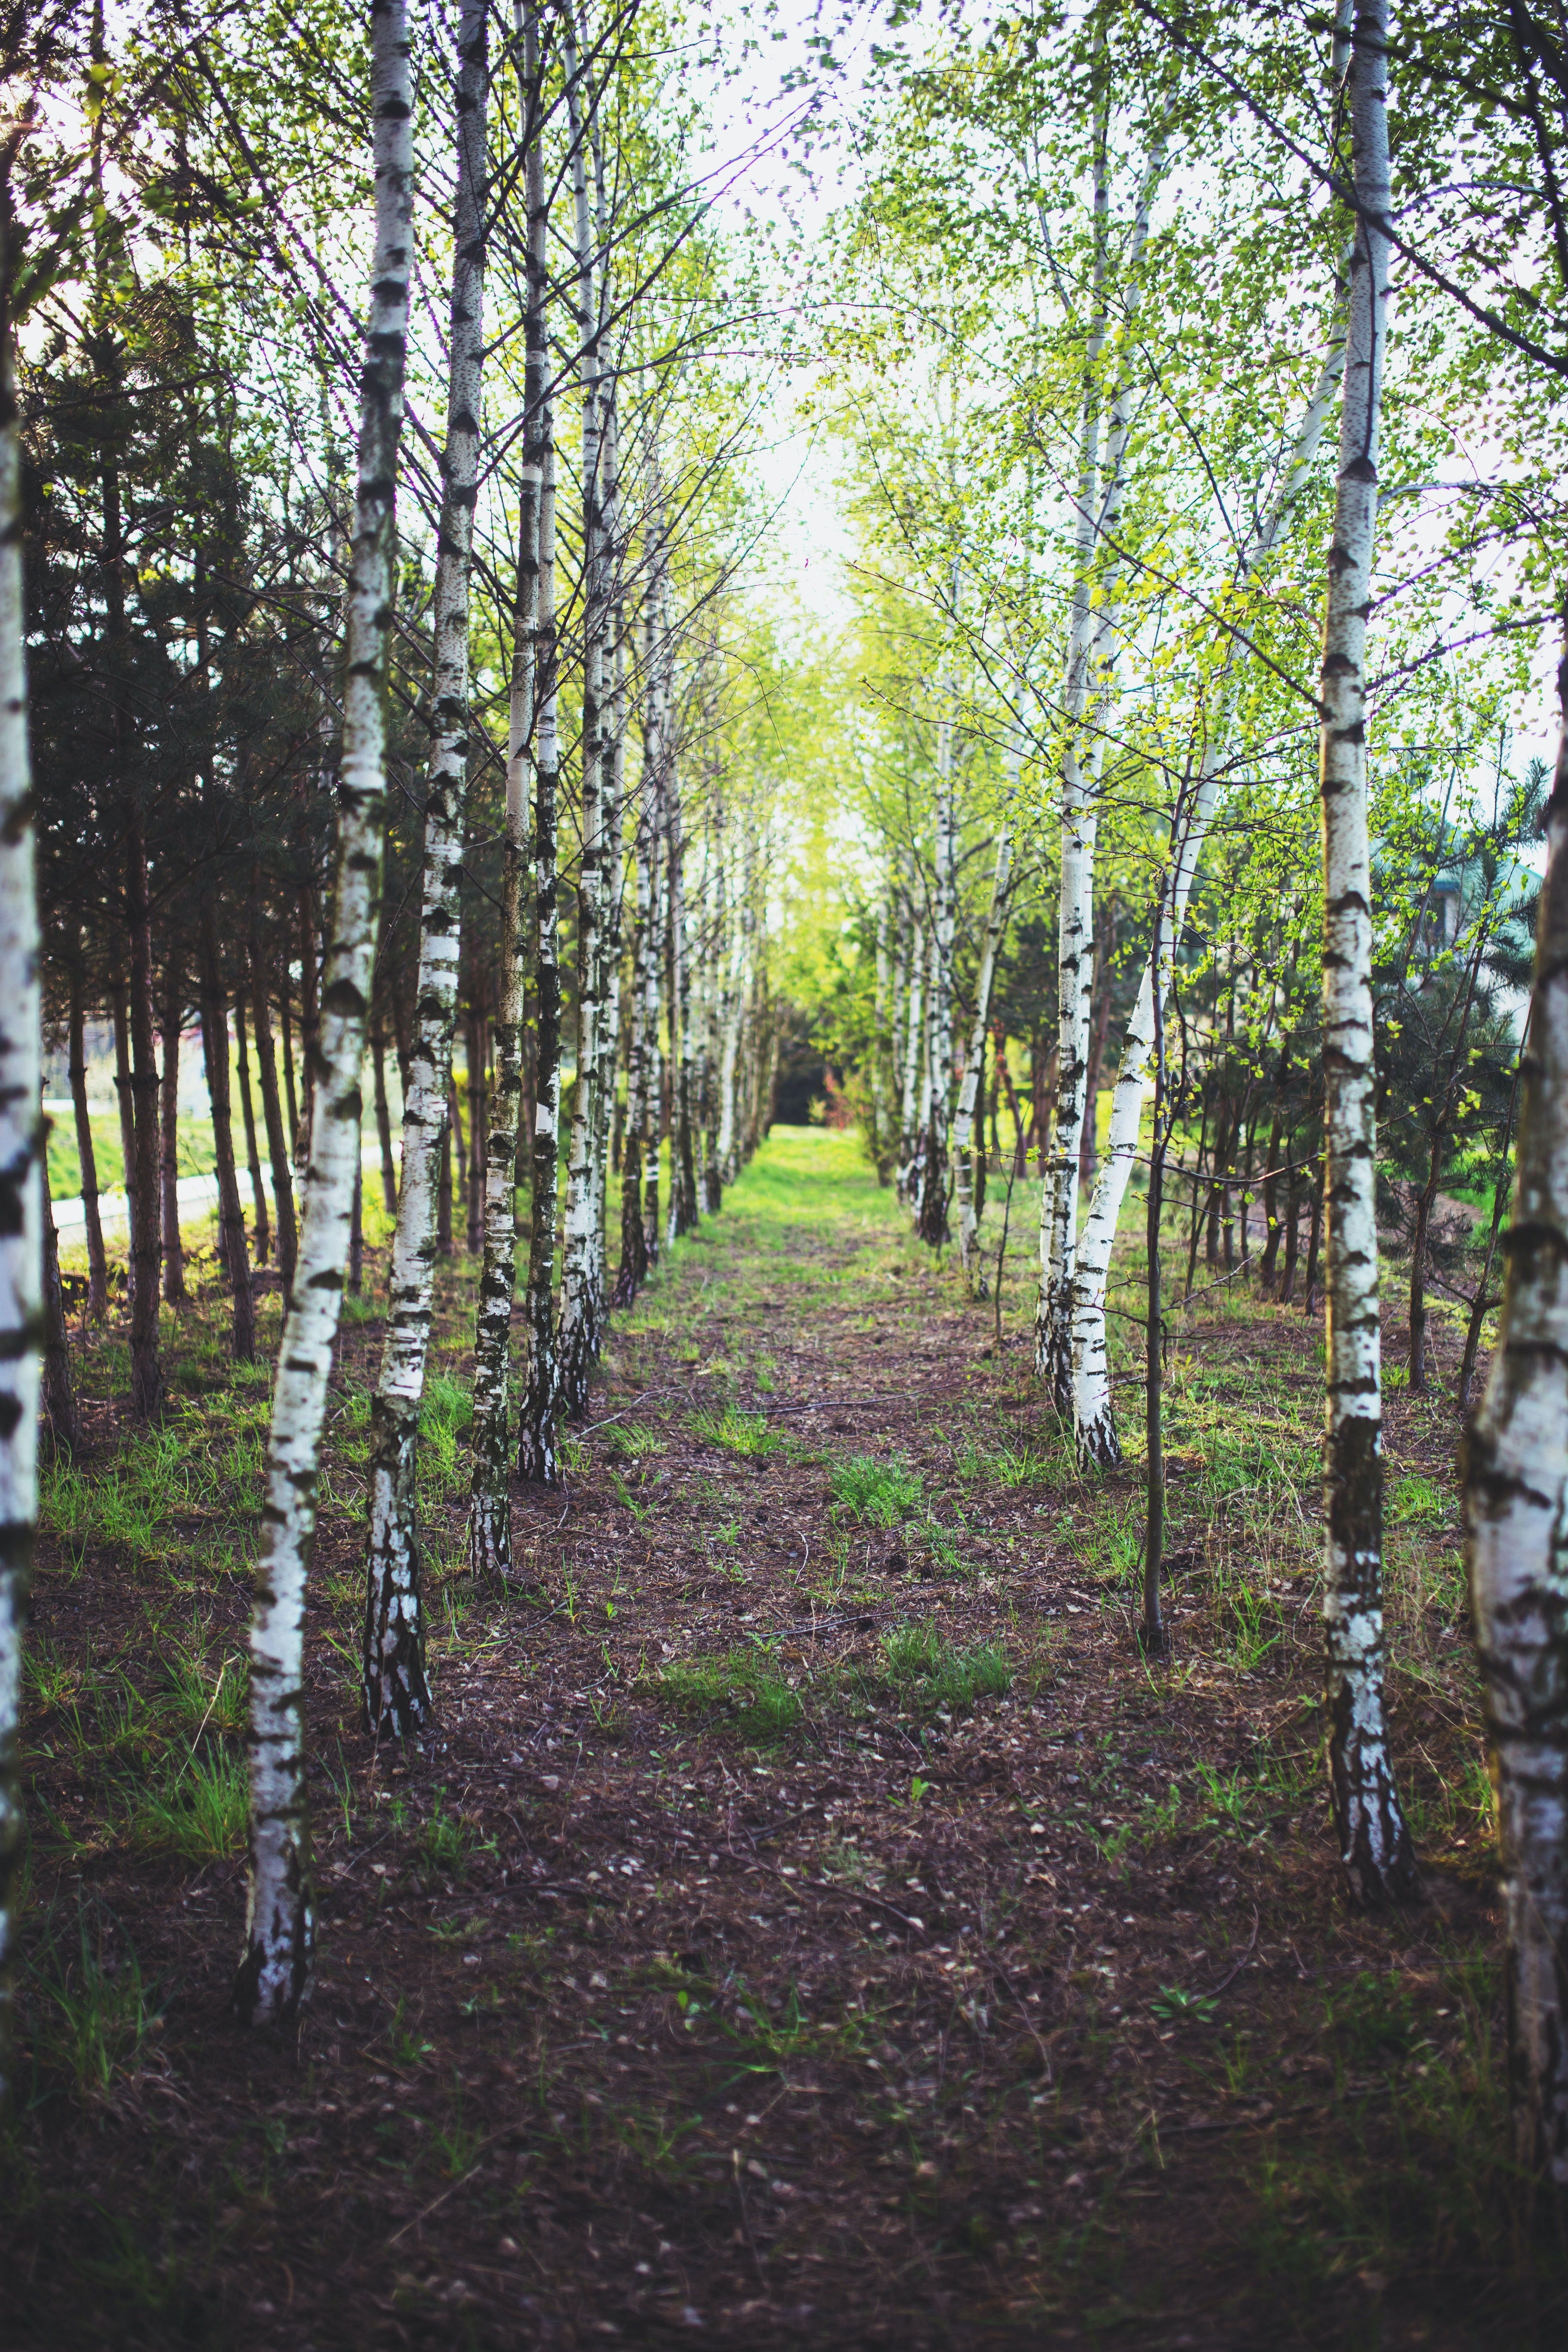 The Path Among The Trees 183 Free Stock Photo